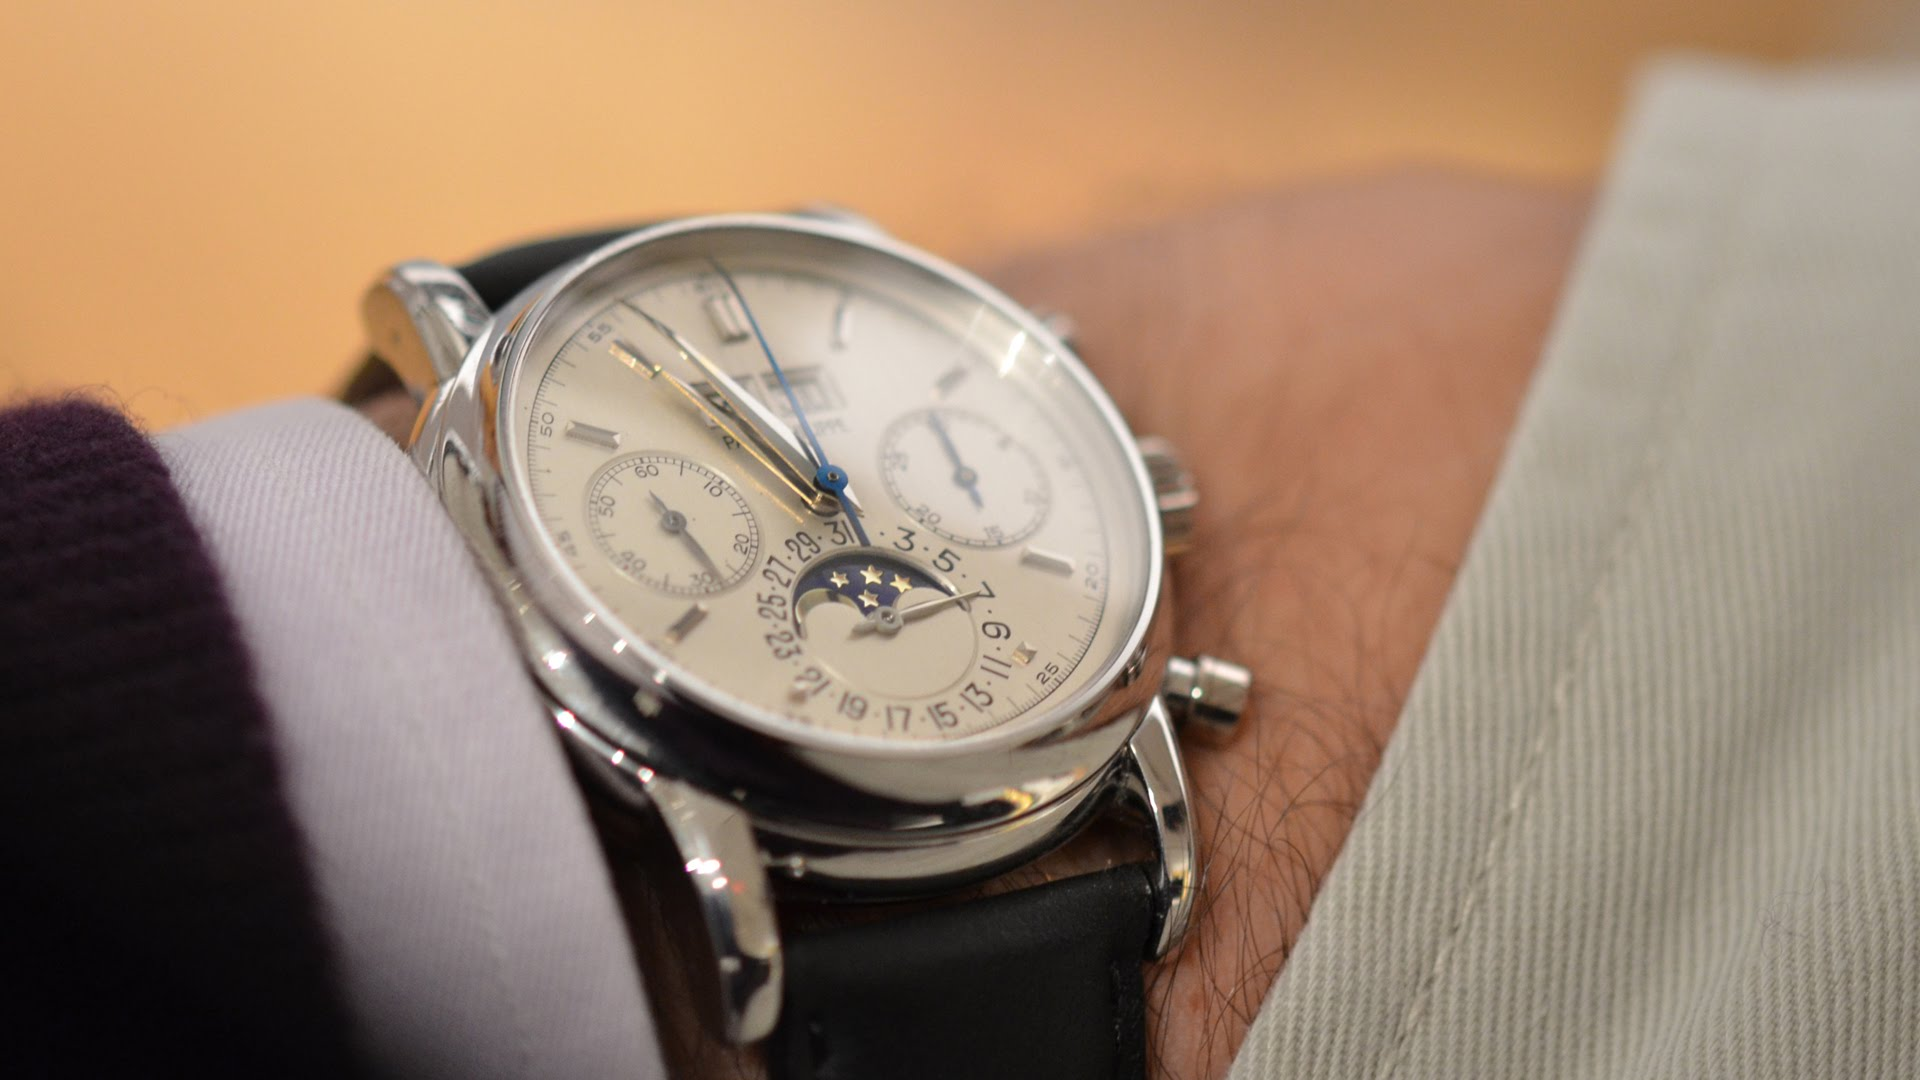 P Philippe Watch The Top Five Special Edition Patek Philippe Watches Ever Money Inc